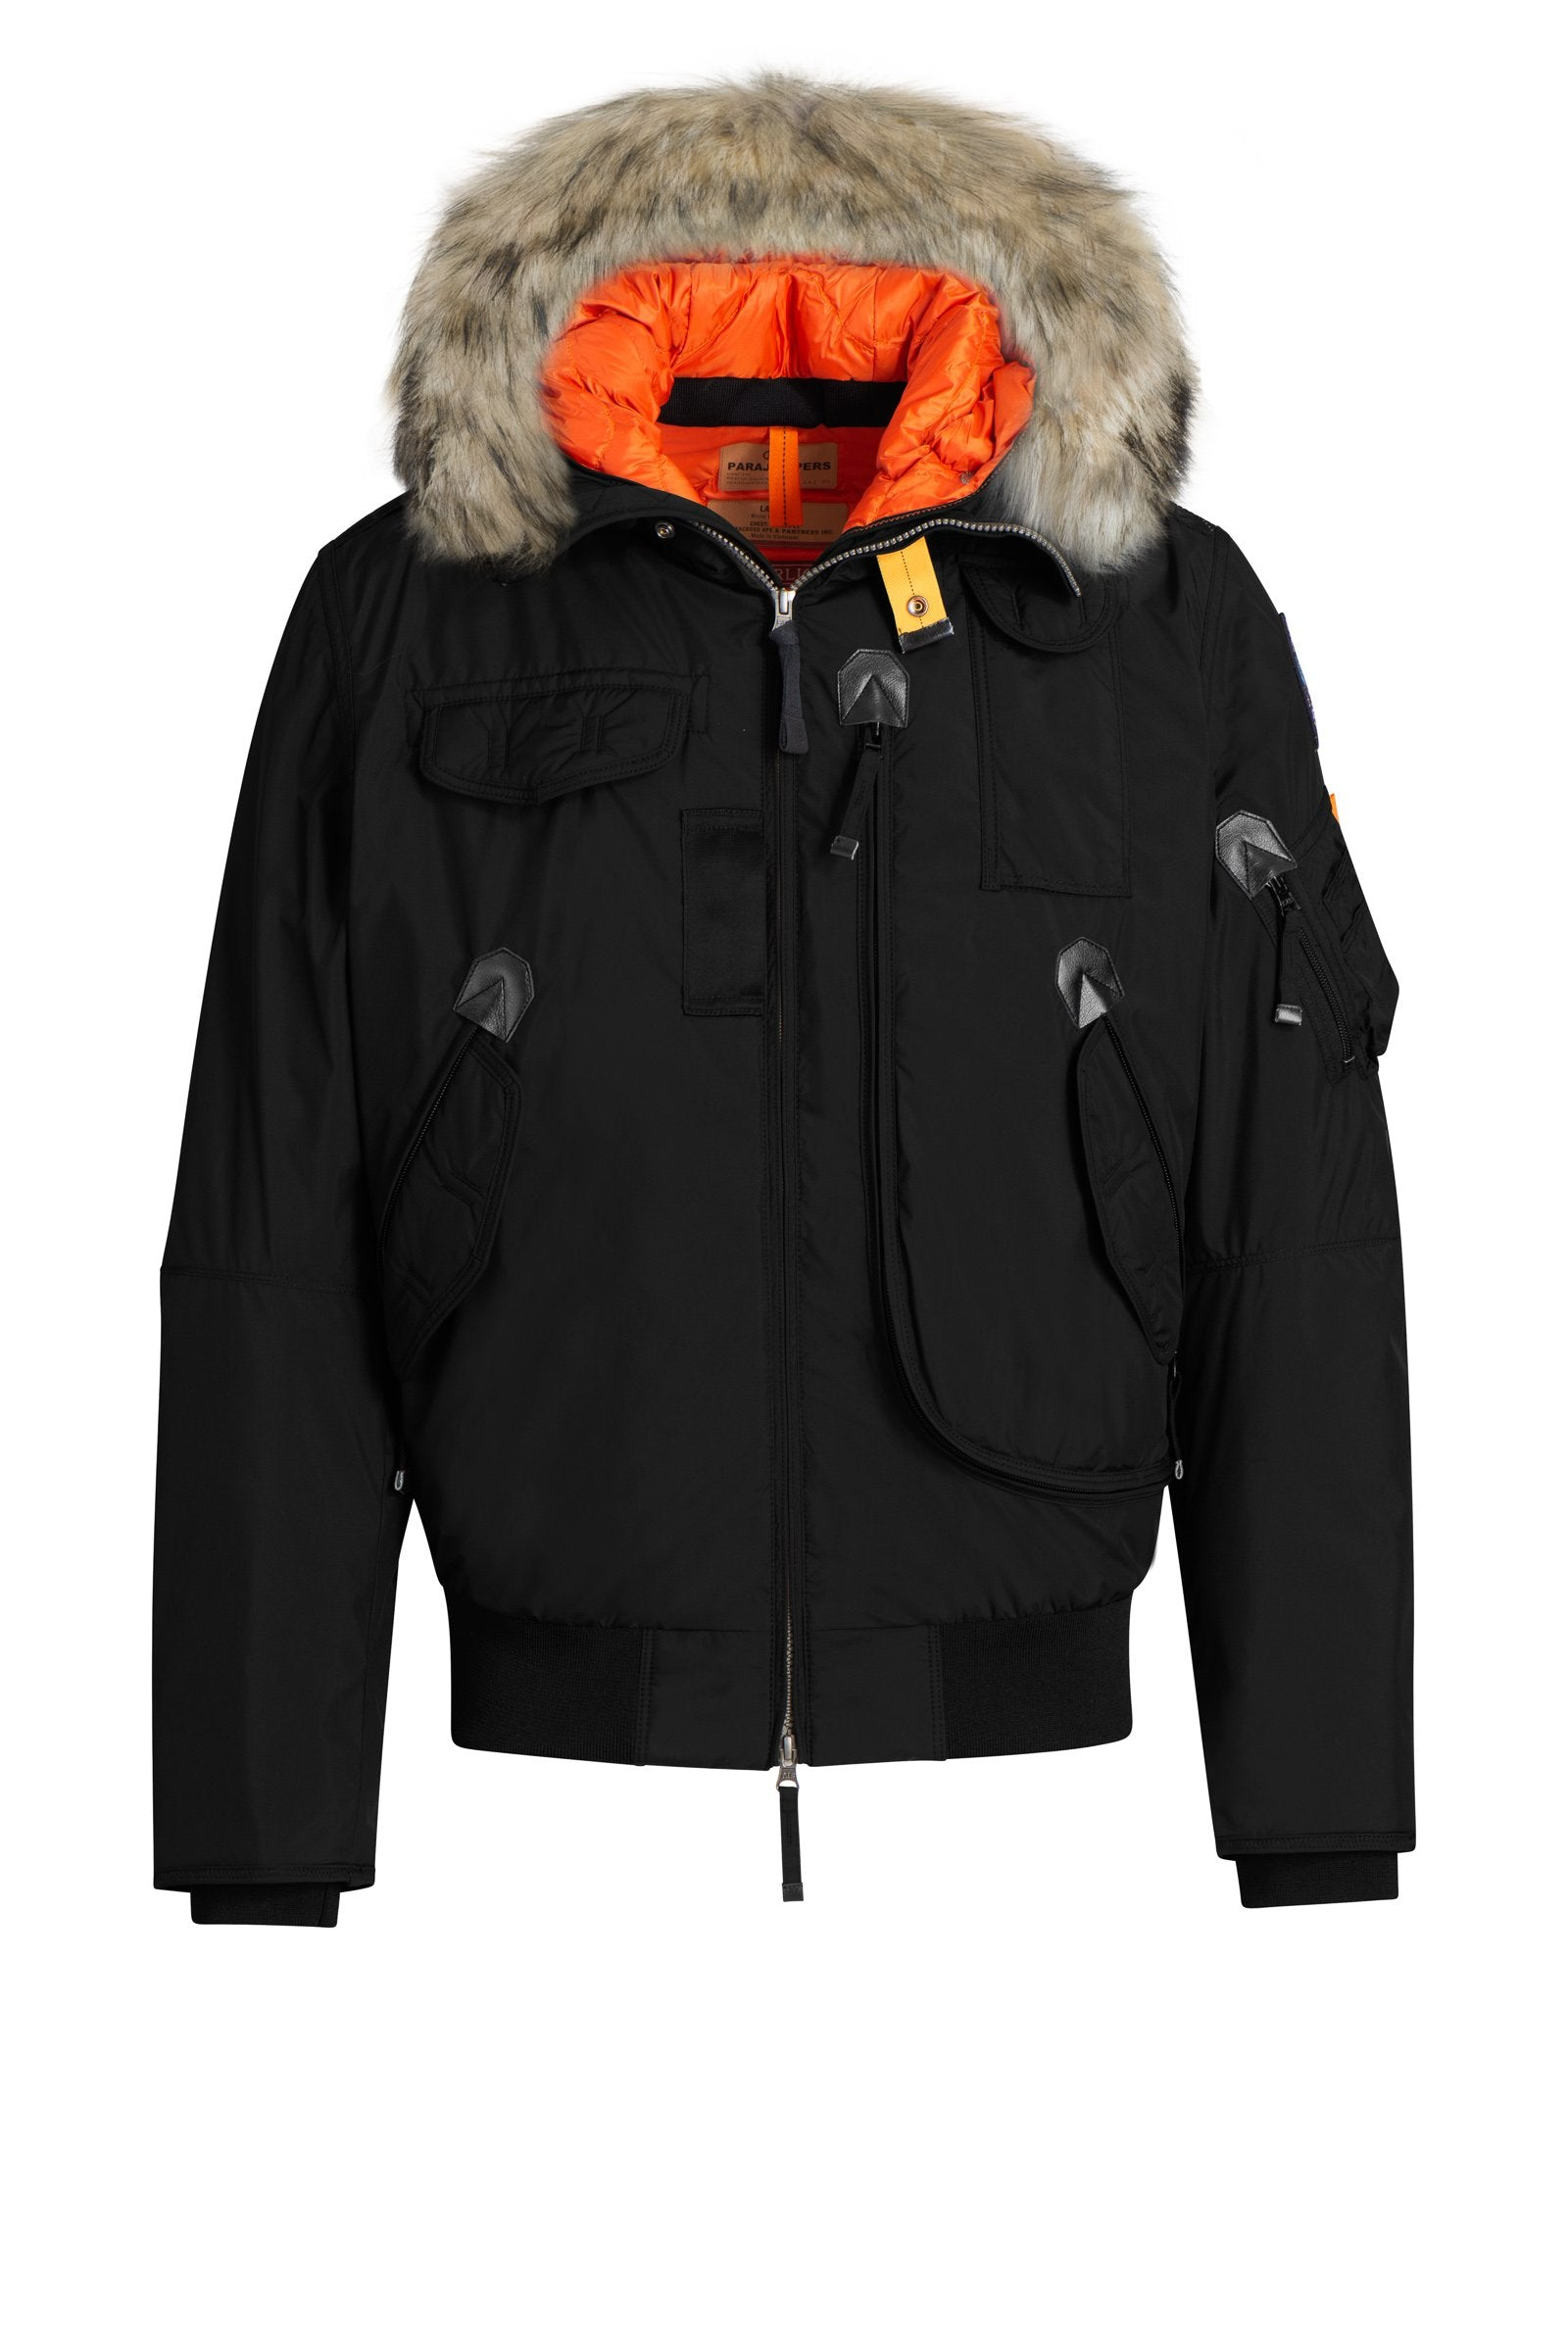 Parajumpers Men's Gobi Light Bomber